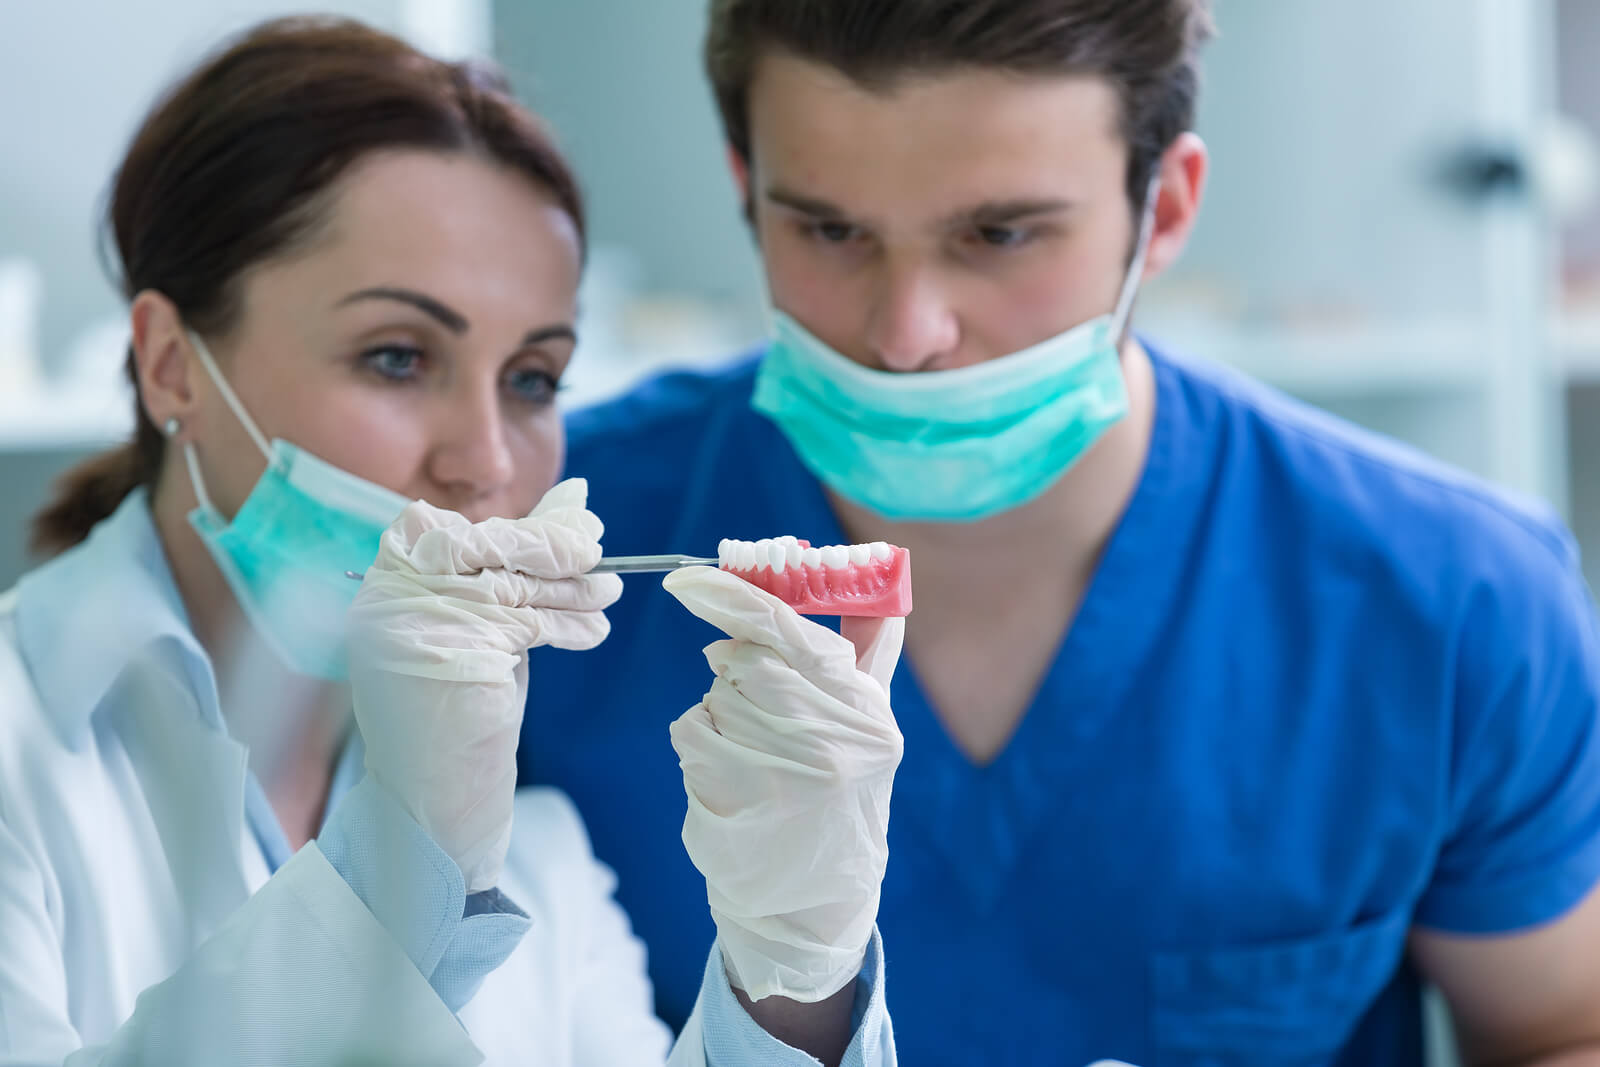 6 Things you need to know before getting dentures